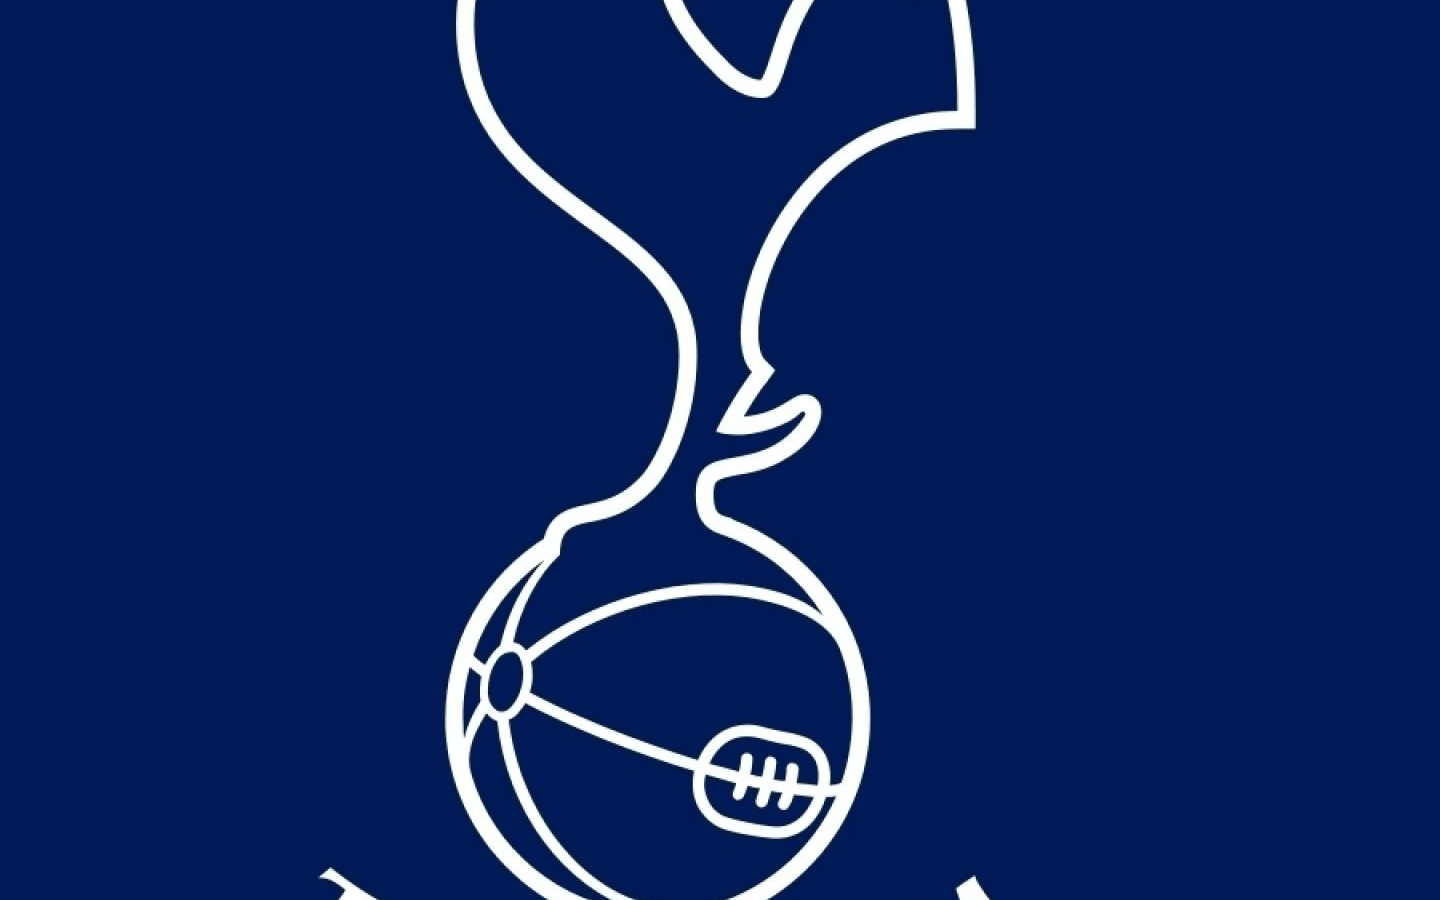 Free Download 10 Latest Tottenham Hotspur Iphone Wallpaper Full Hd 19201080 For 1440x2560 For Your Desktop Mobile Tablet Explore 16 Tottenham Hotspur F C 2019 Wallpapers Tottenham Hotspur F C 2019